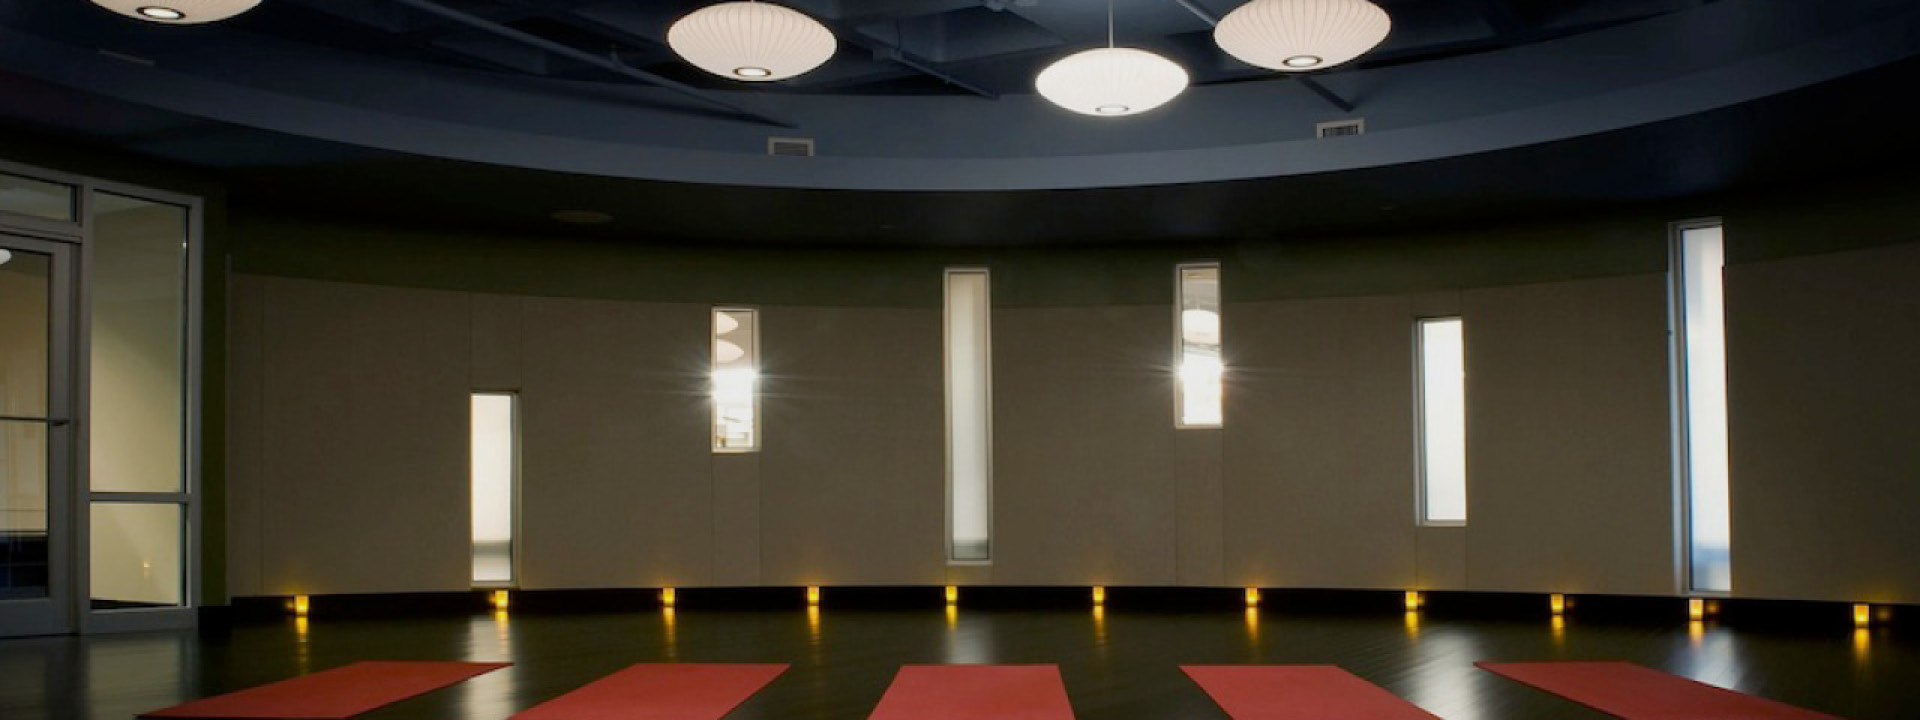 Luxury Gyms in Downtown Boston Financial District - Equinox